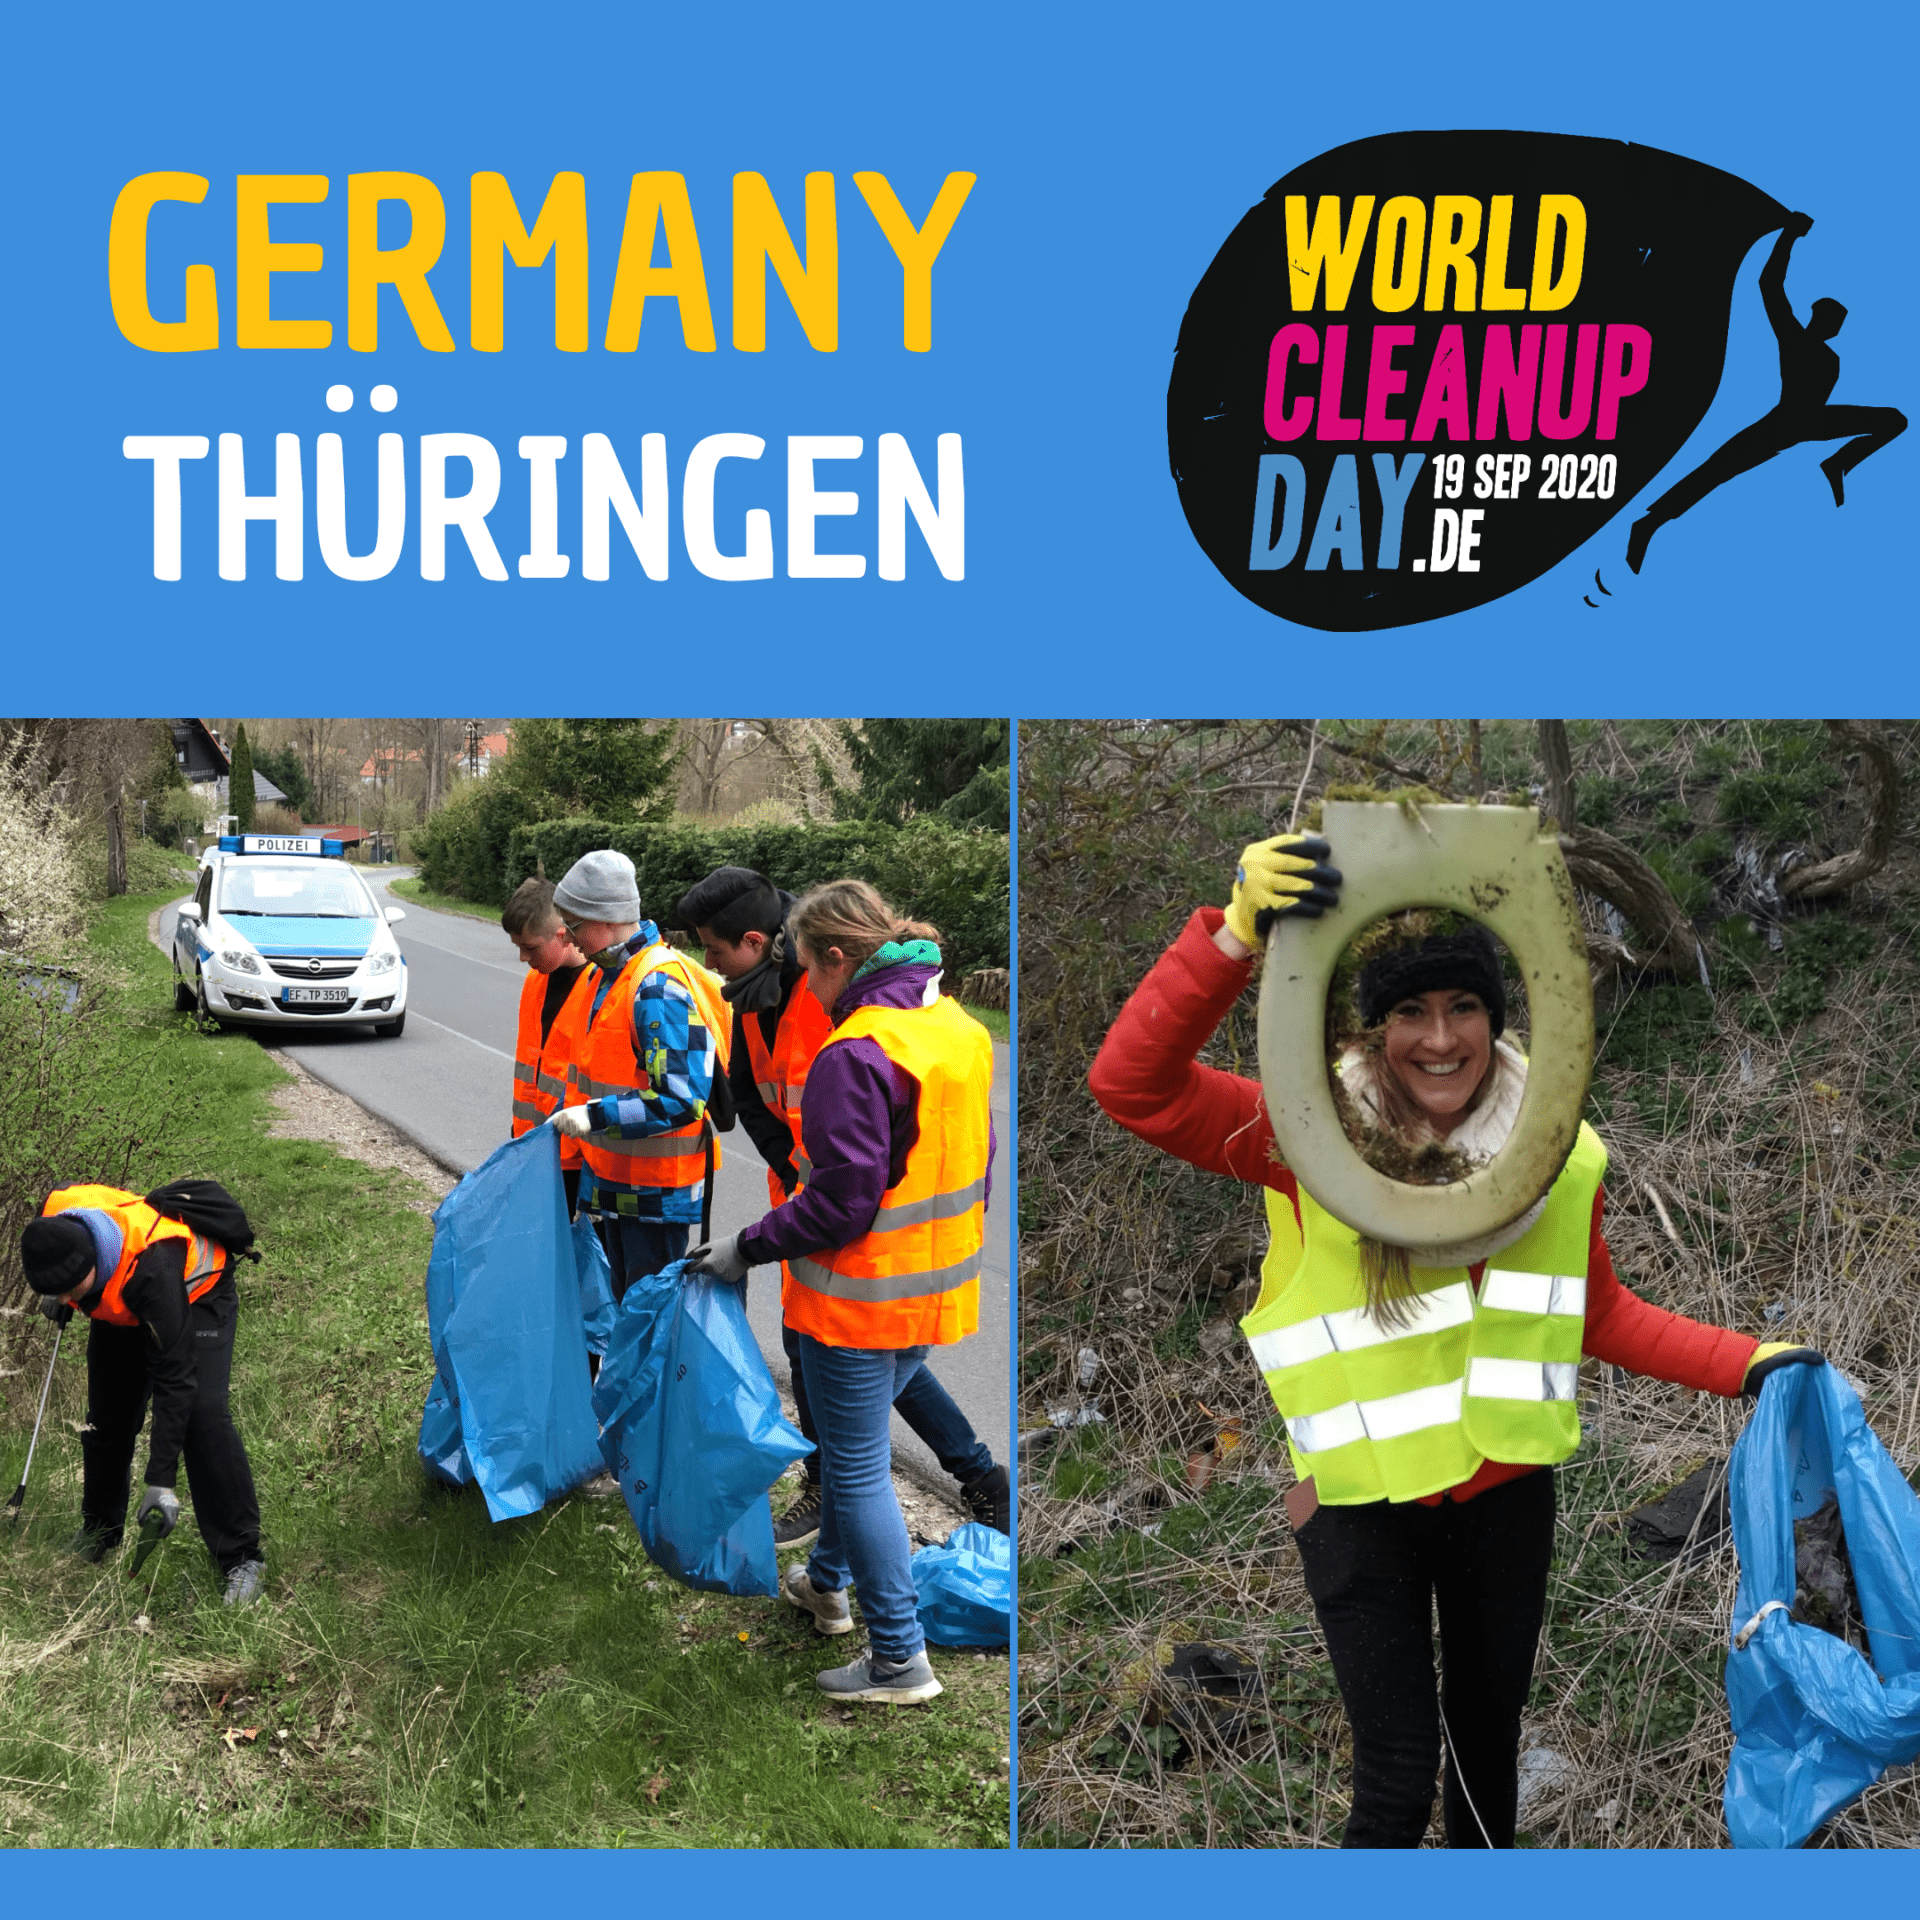 World Cleanup Day in Erfurt - OT Roter Berg (Thüringen)